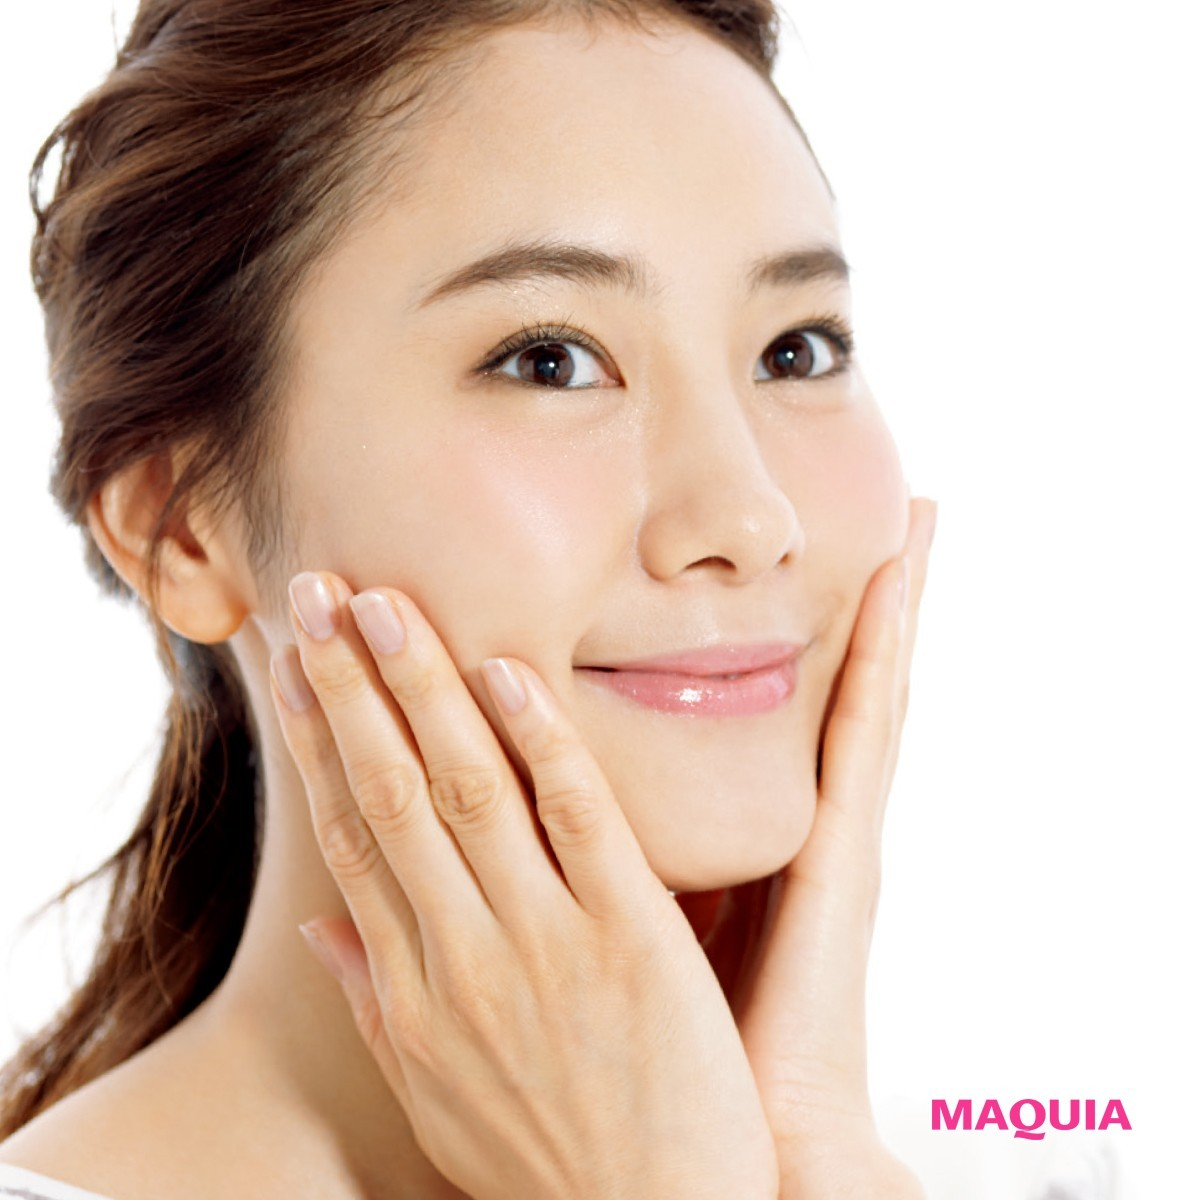 https://maquia.hpplus.jp/special/editorial/matome/skincare_160921/